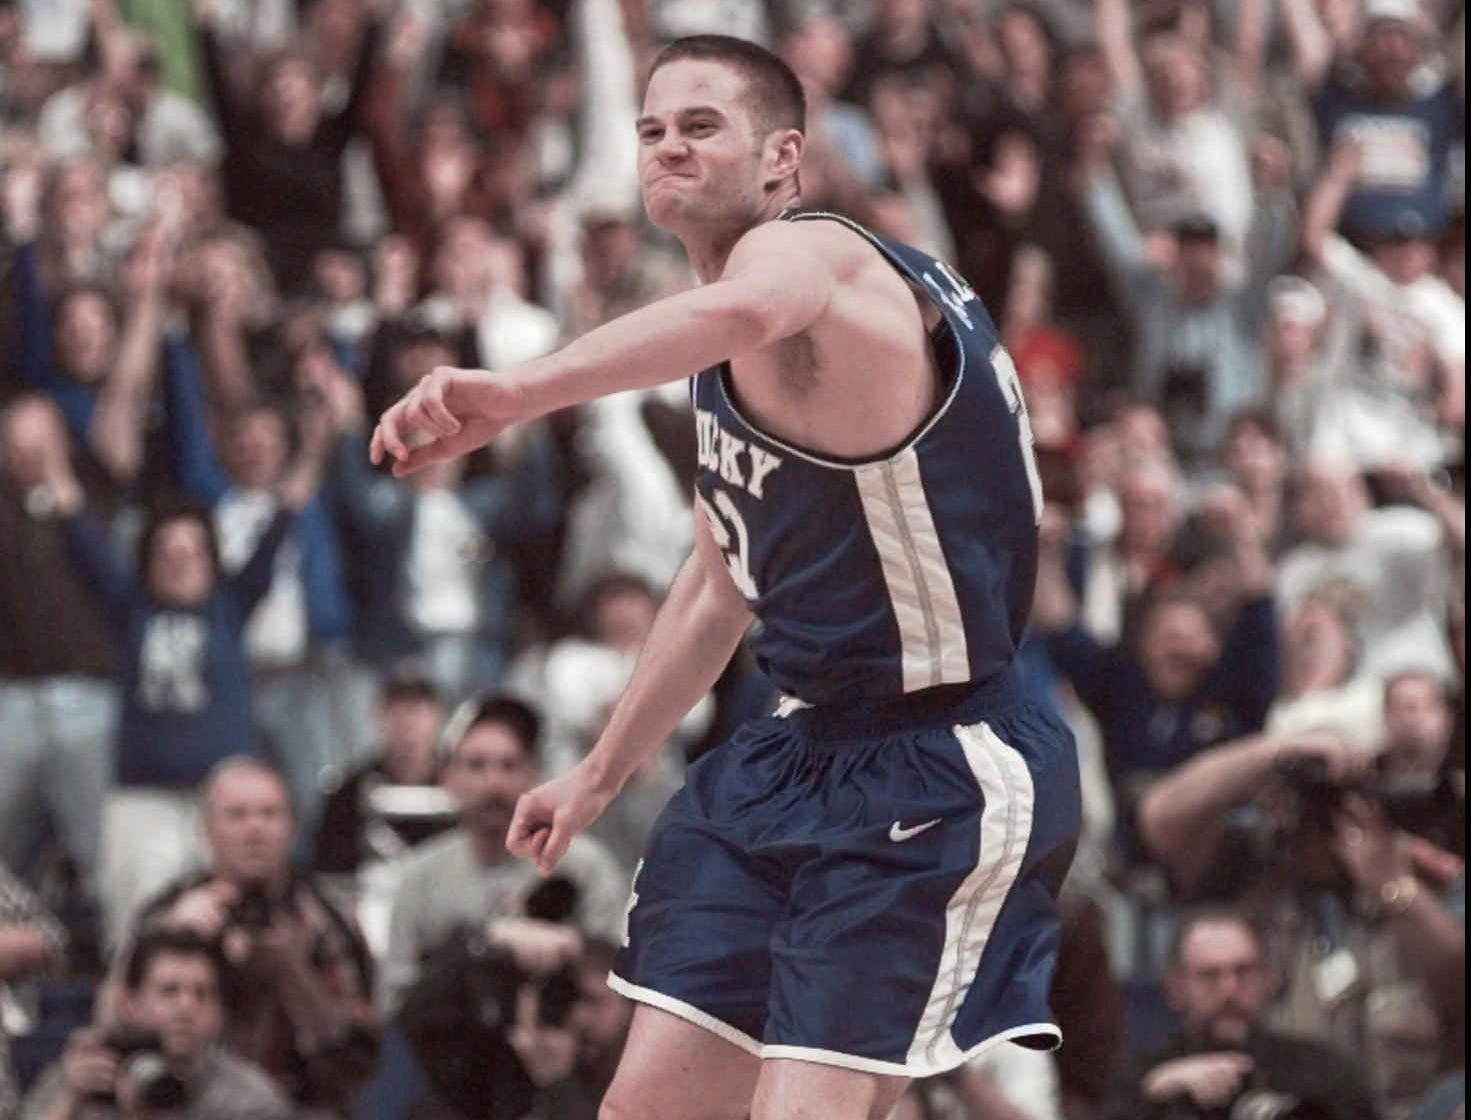 Kentucky's Cameron Mills celebrates after sinking a three pointer to tie the score during the 2nd half of the NCAA South Regional Final against Duke in St. Petersburg, Fla., Sunday, March, 22, 1998.